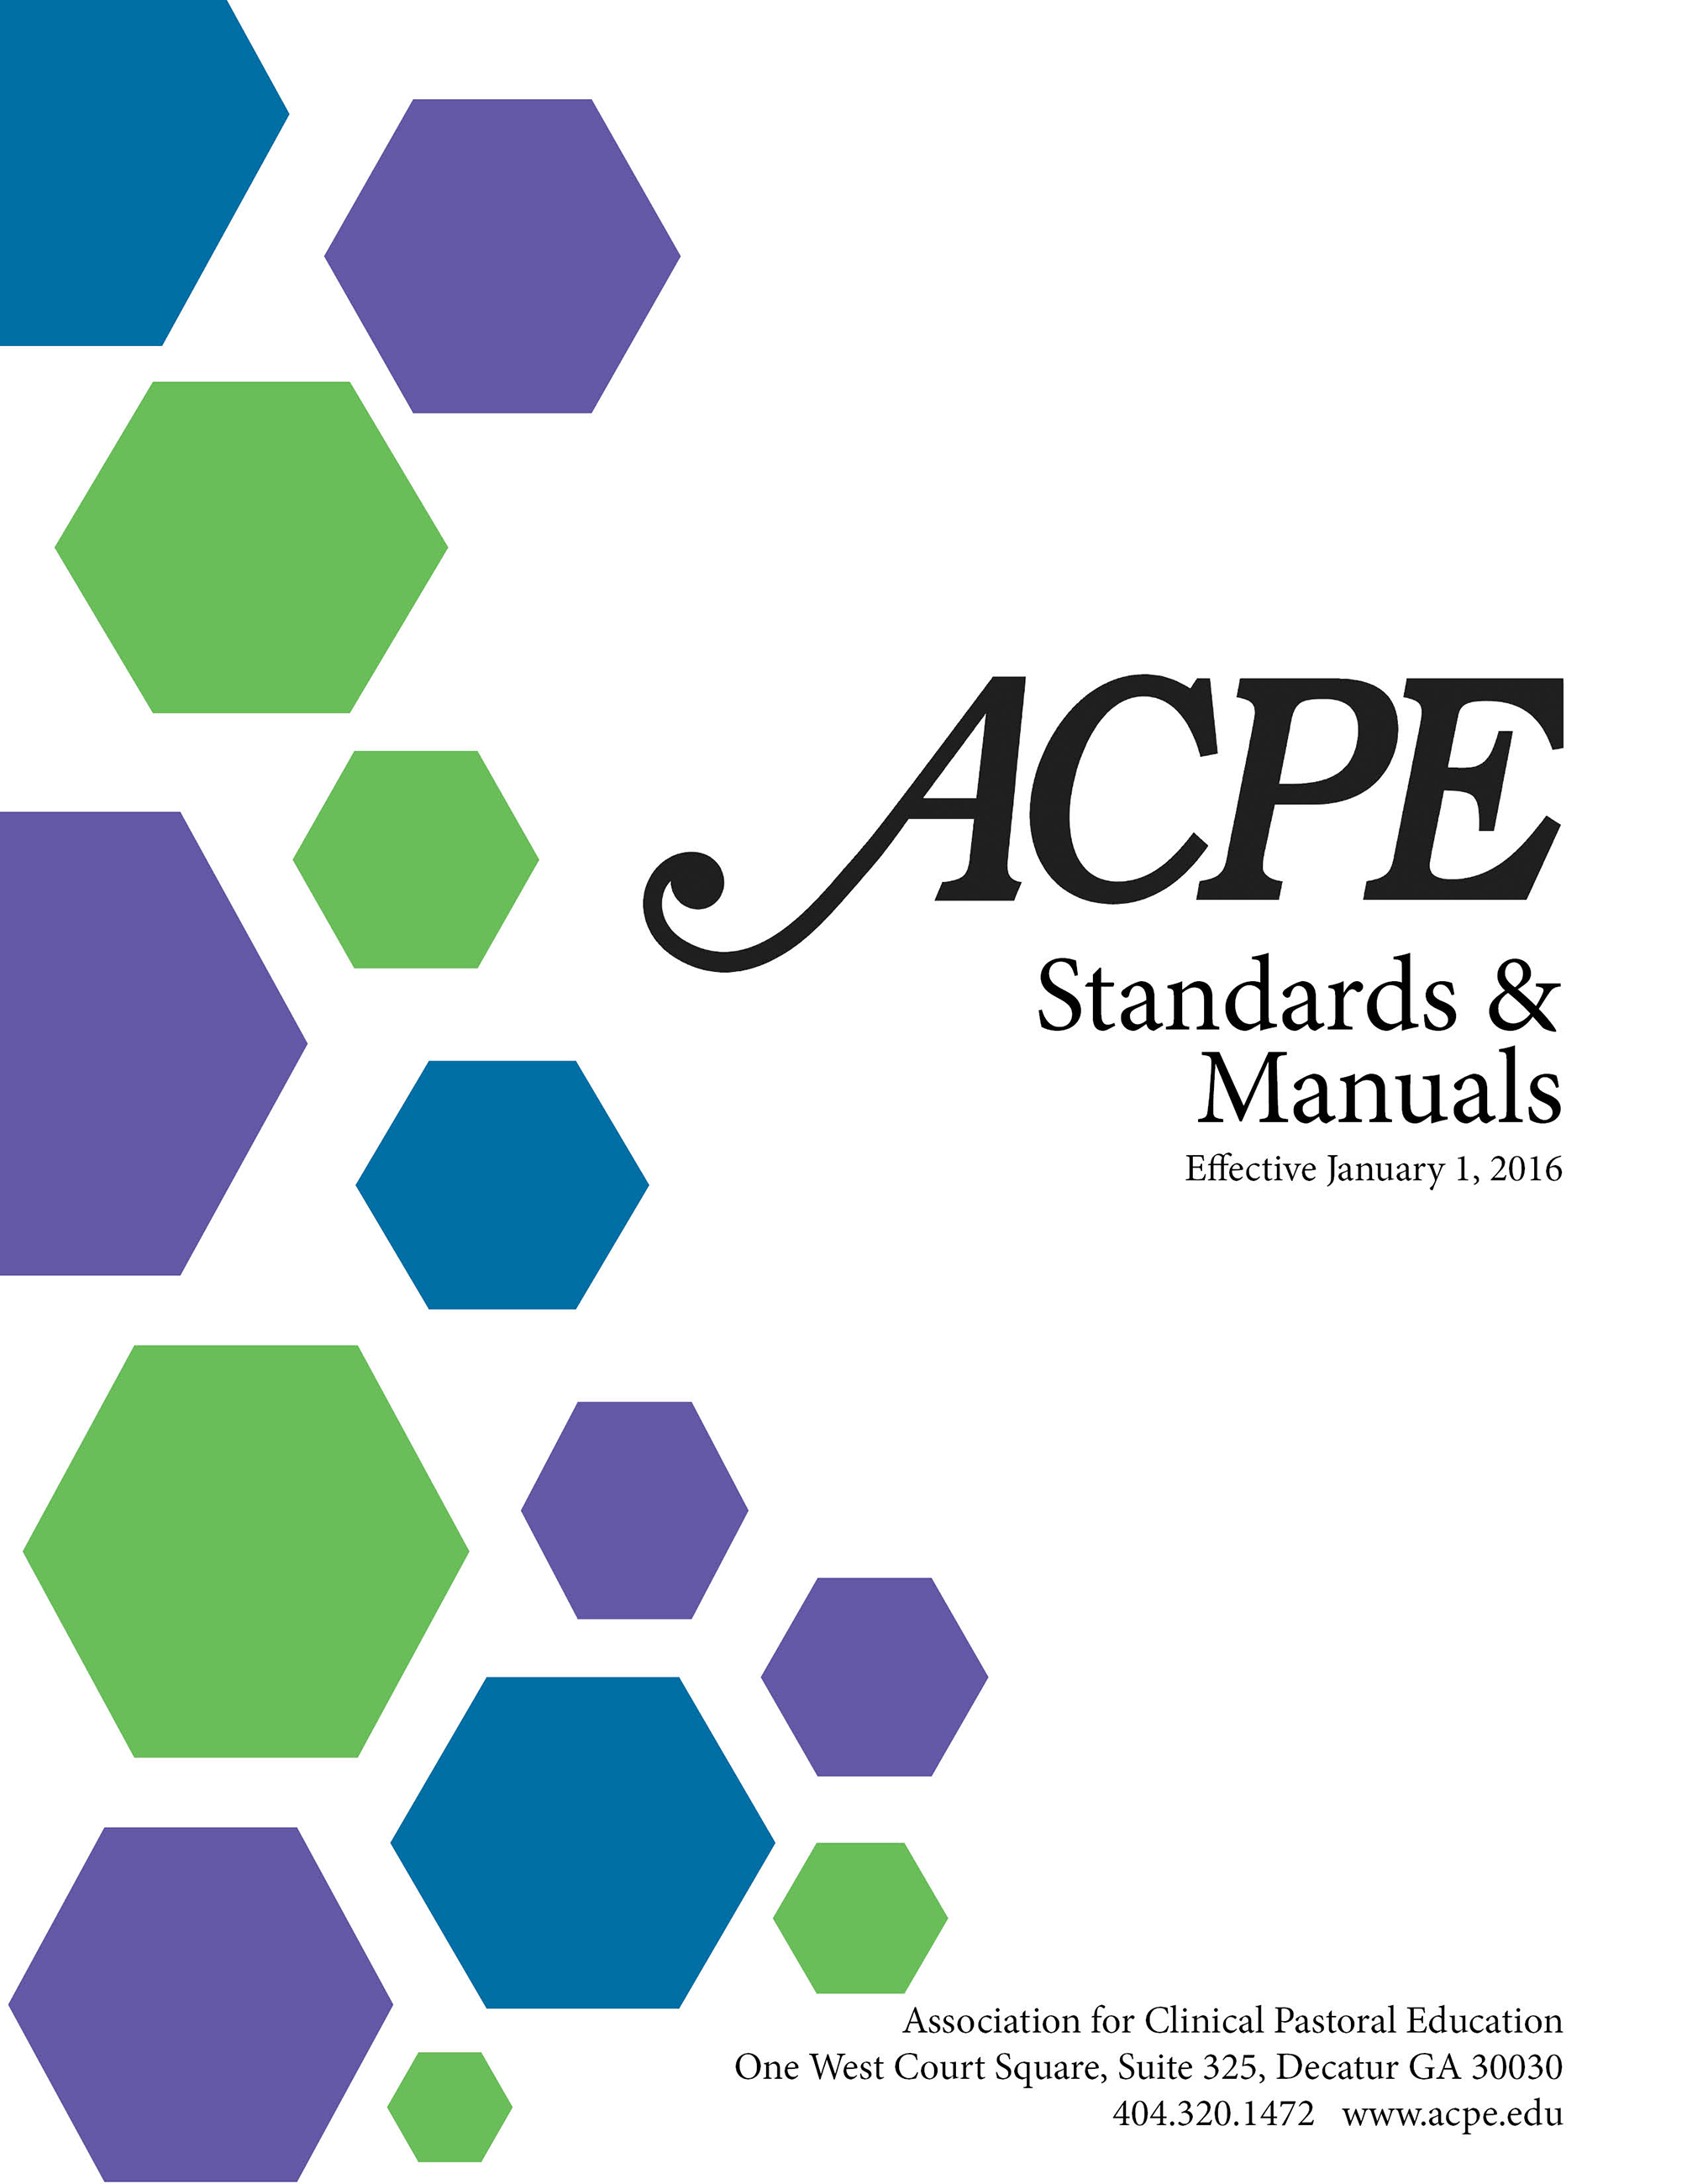 Cover Page ACPE Manuals 9152015 – Training Manual Cover Page